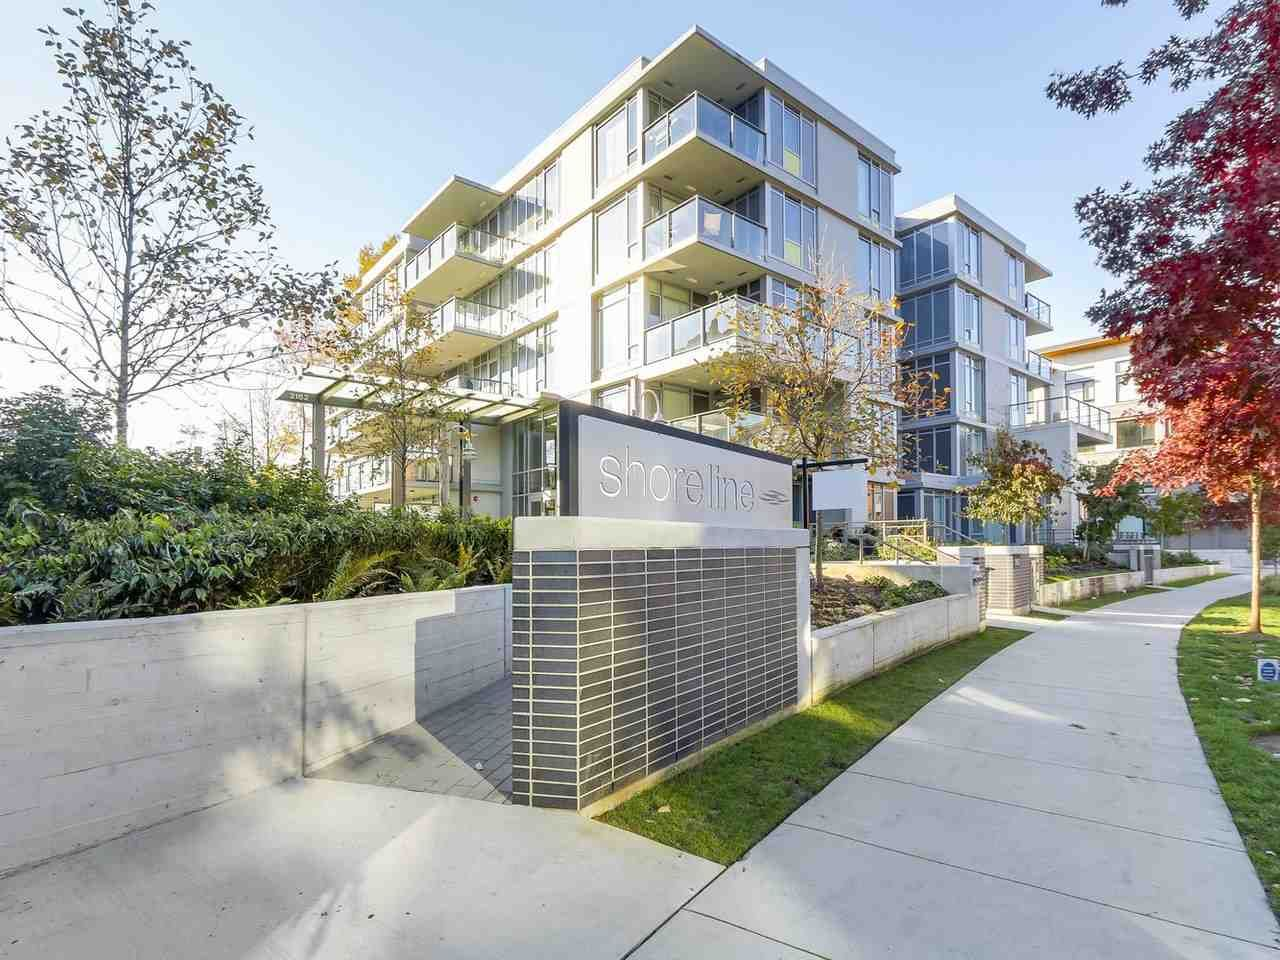 """Main Photo: 402 3162 RIVERWALK Avenue in Vancouver: Champlain Heights Condo for sale in """"SHORELINE"""" (Vancouver East)  : MLS®# R2220256"""